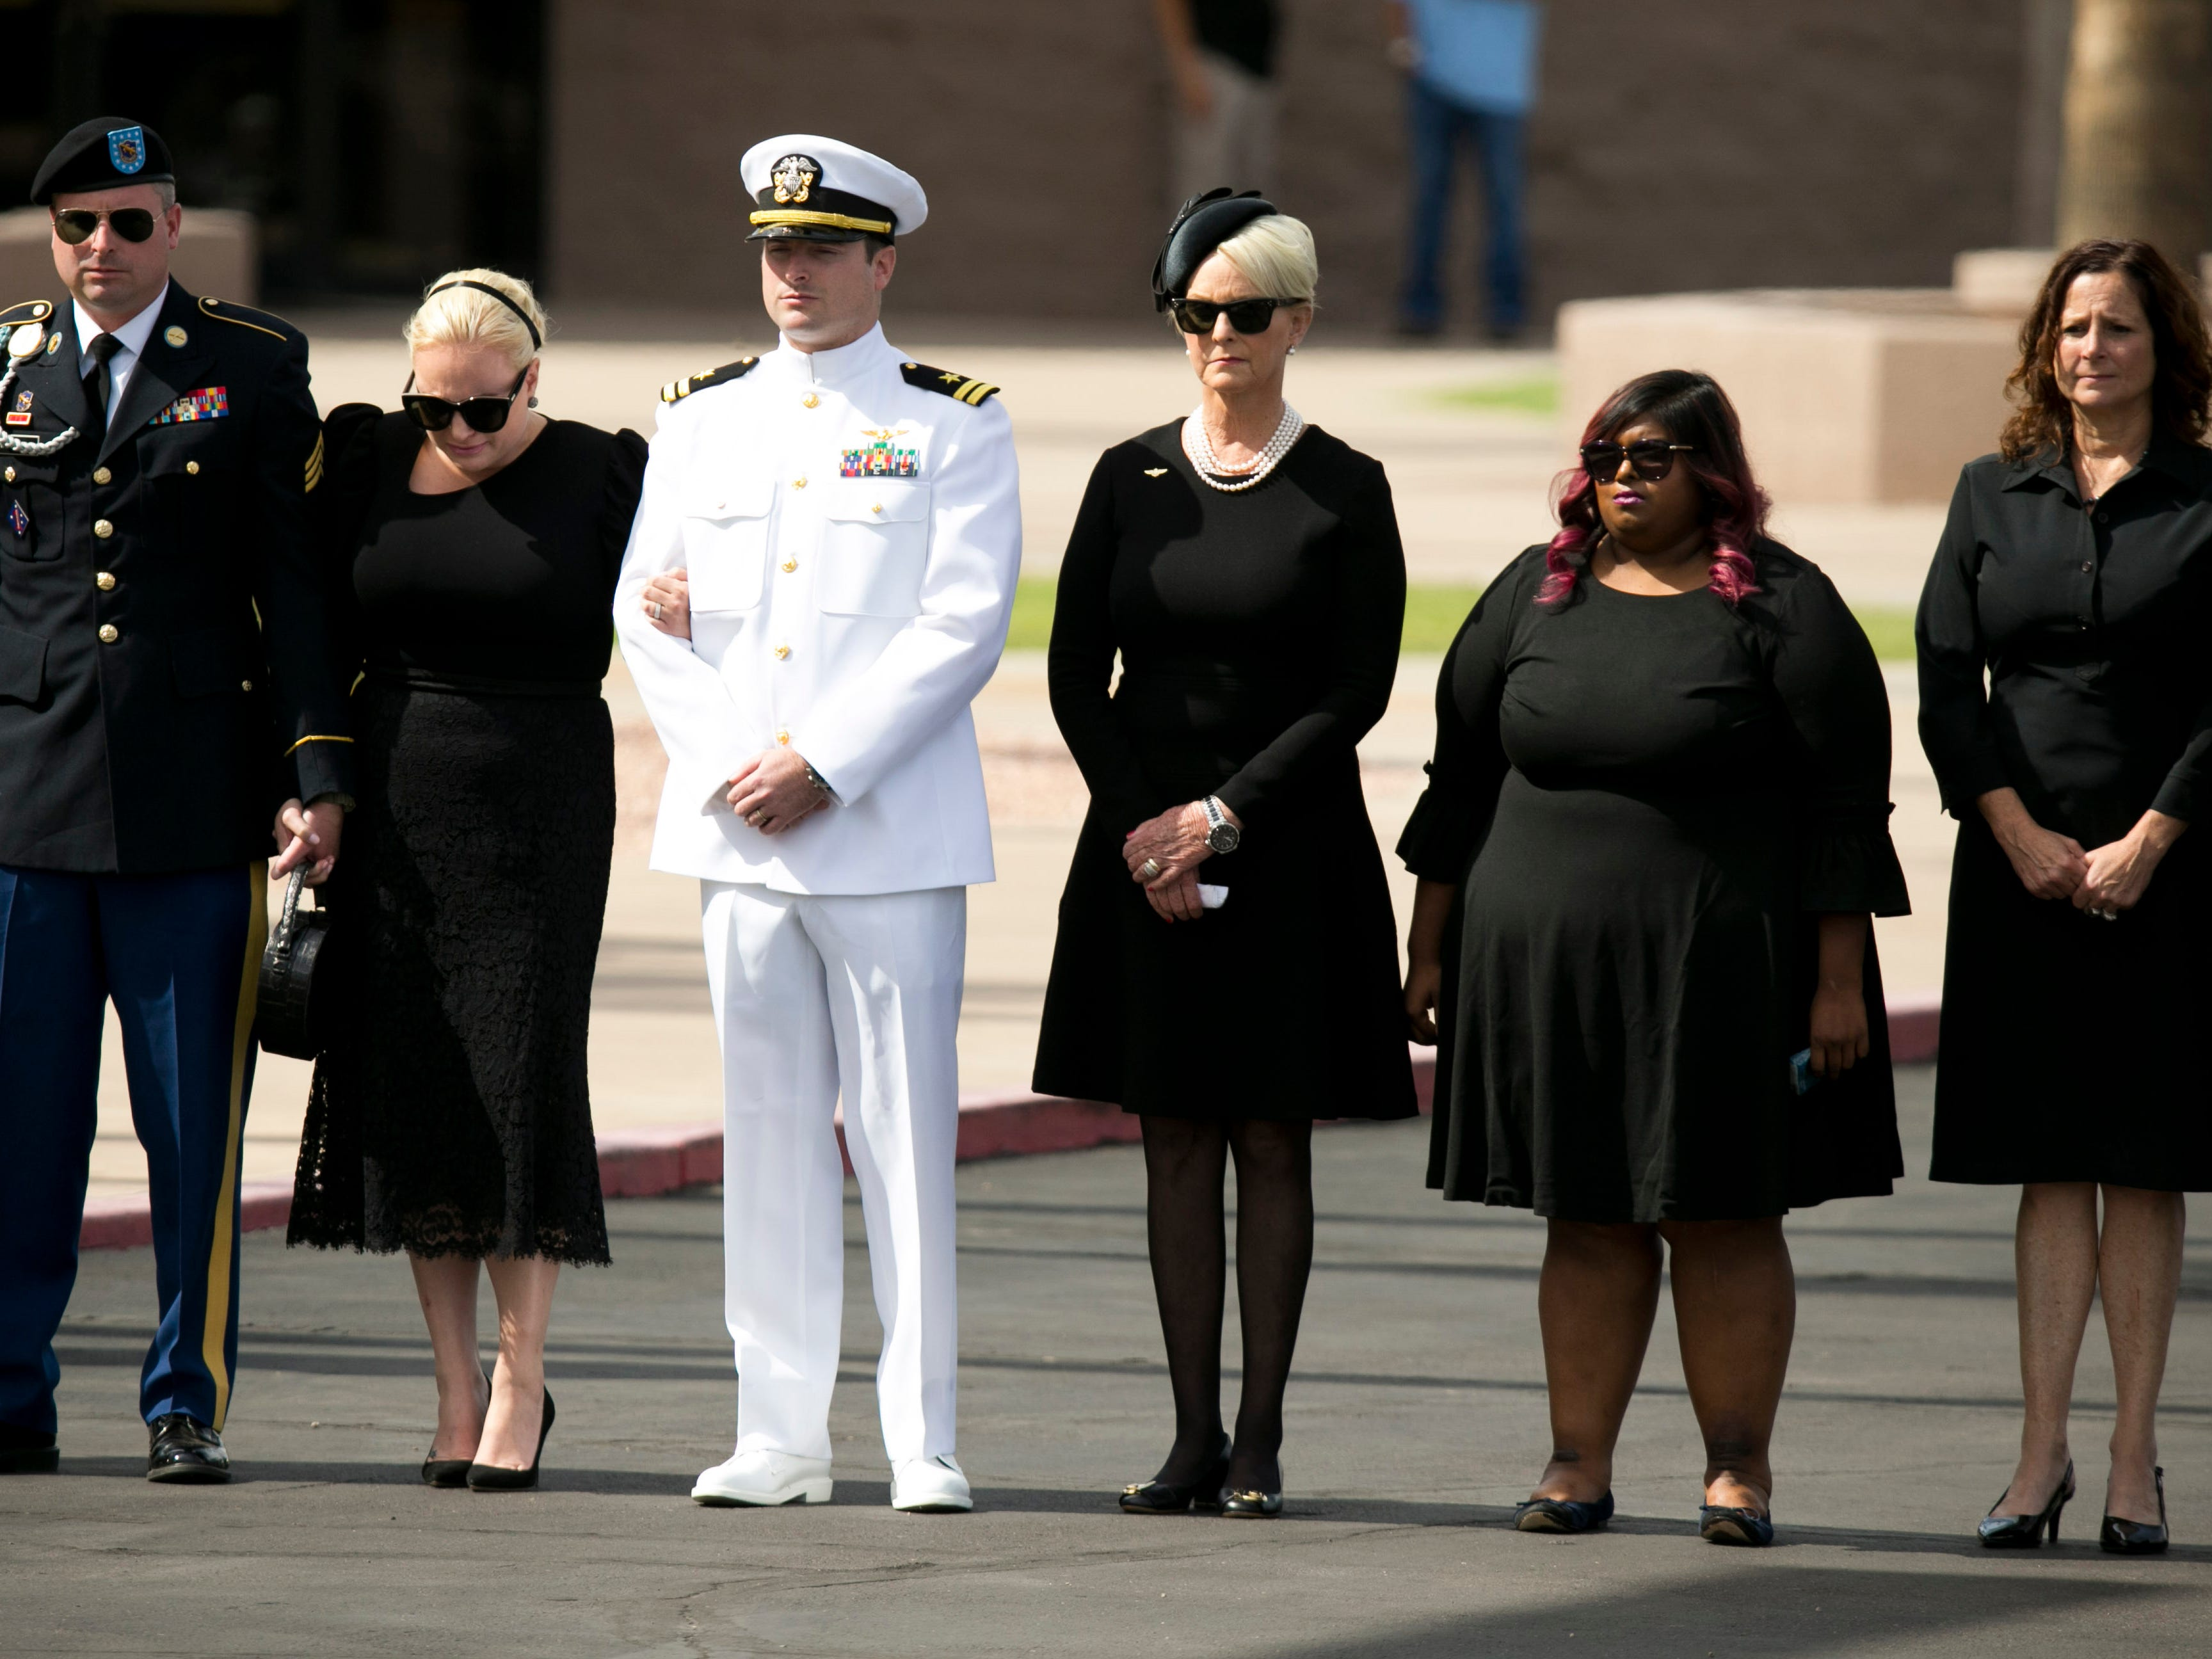 Sen. John McCain's family, from left, Jimmy McCain, Meghan McCain, Jack McCain, Cindy McCain, Bridget McCain and Sidney McCain, stand together before a memorial service at the North Phoenix Baptist Church in Phoenix, Aug. 30, 2018.